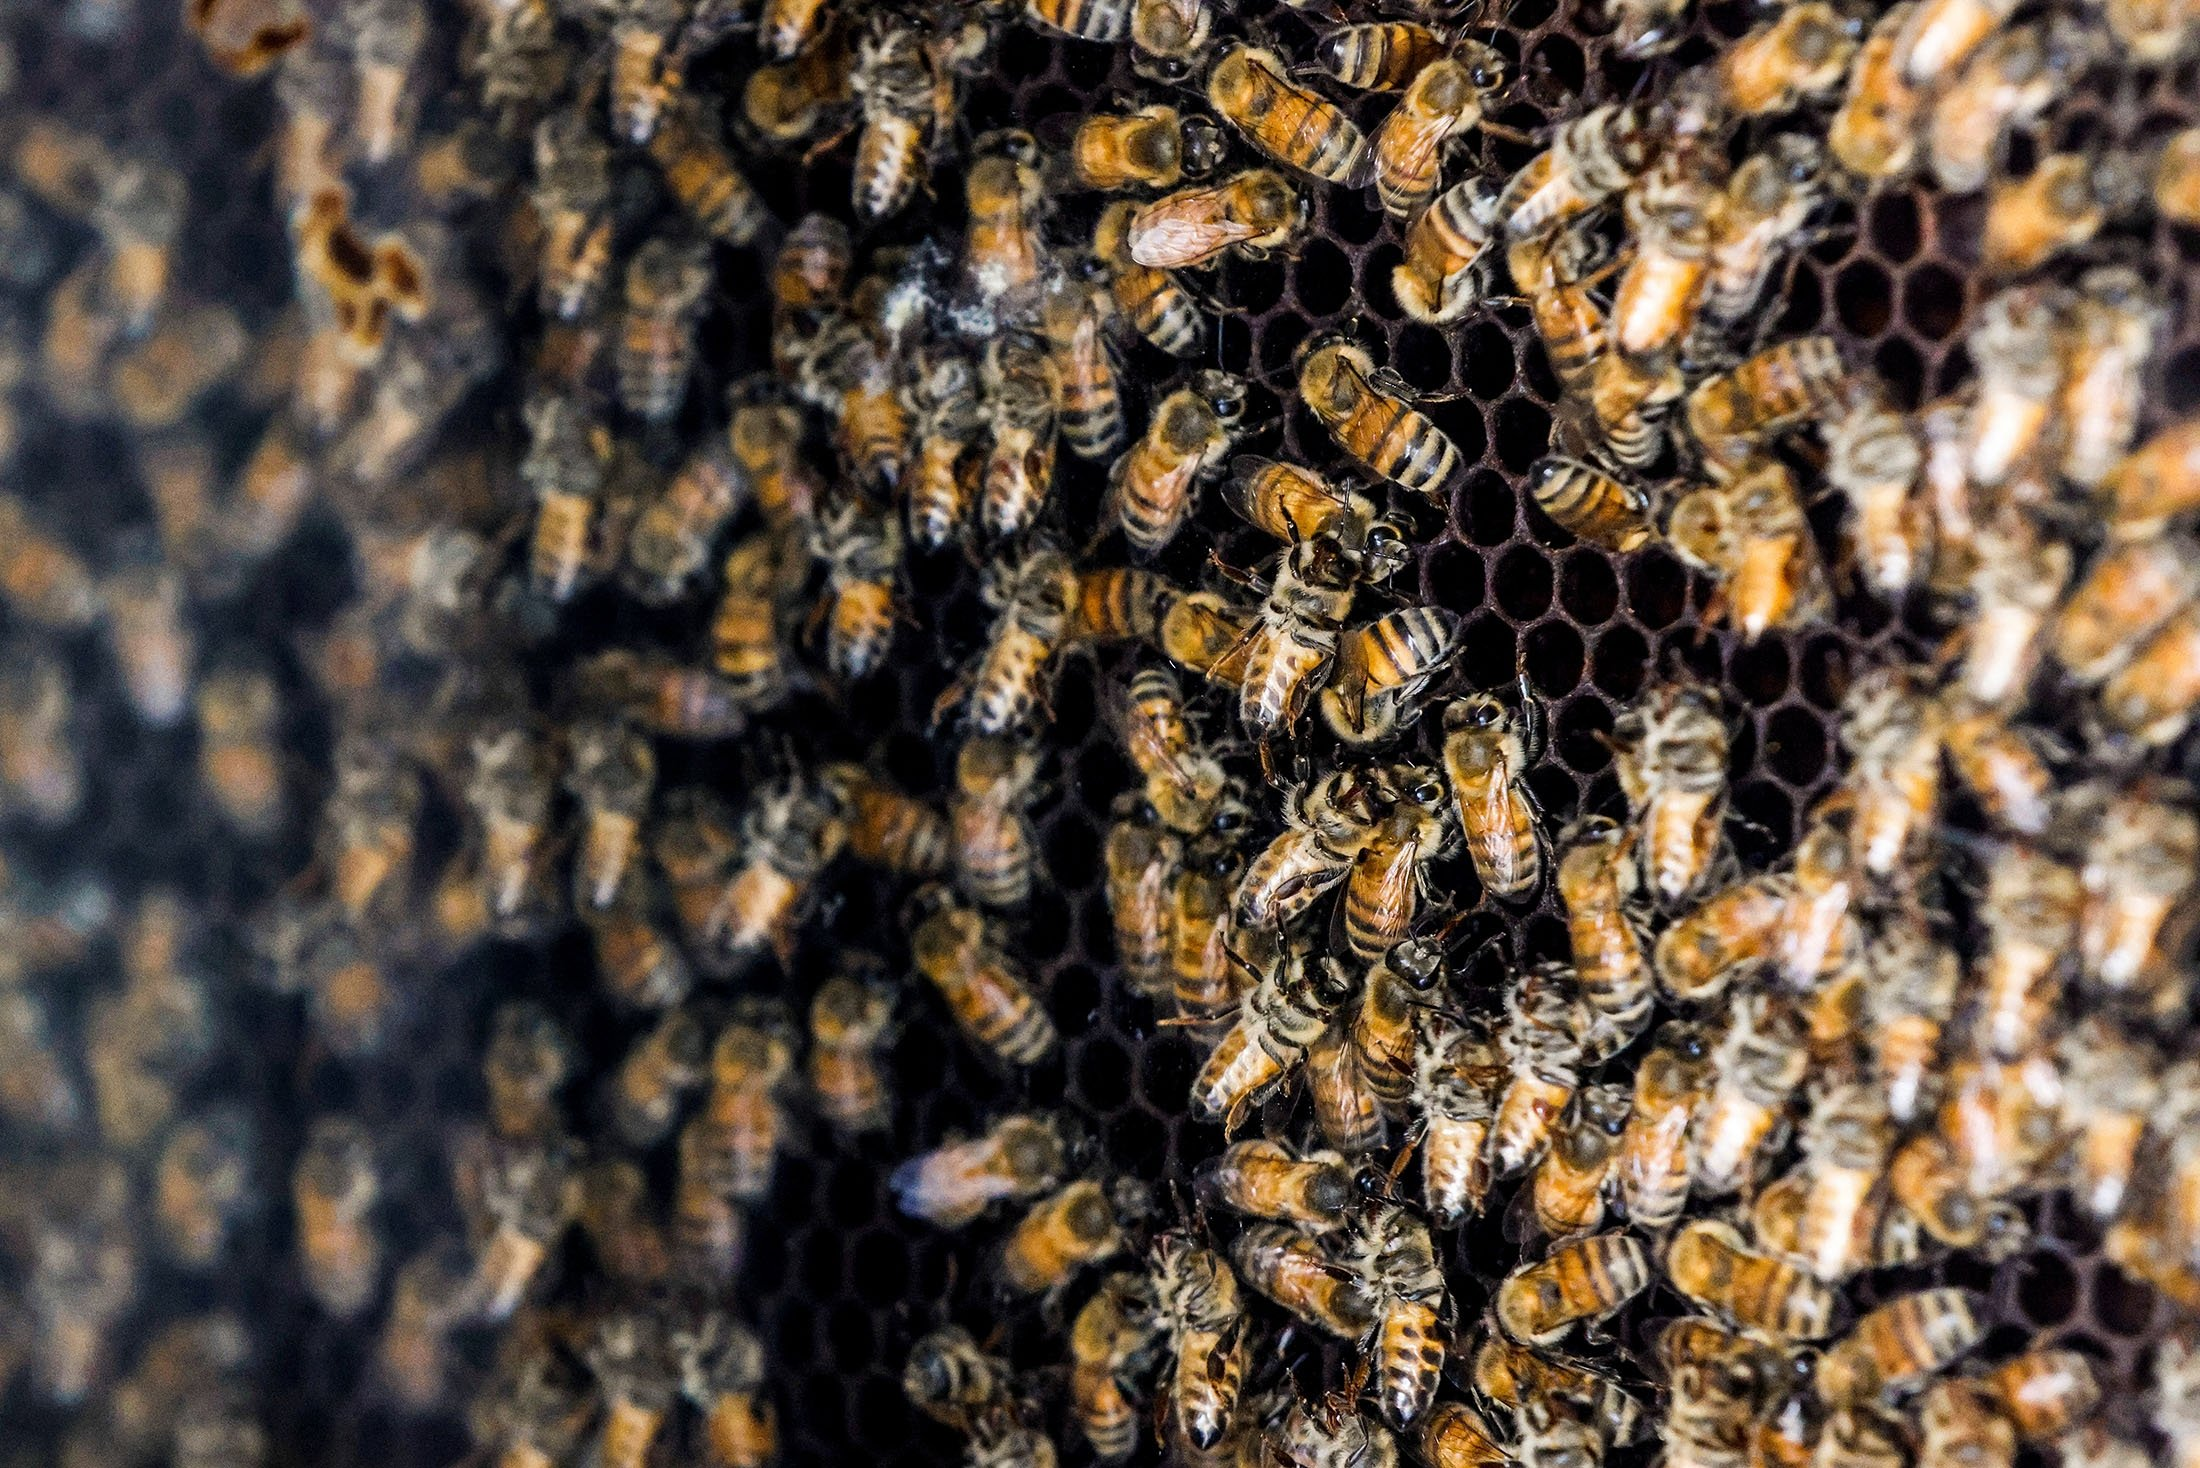 Bees swarm a honeycomb, a part of a robotic beehive developed by Israeli startup Beewise, in Beit Haemek, Israel, July 29, 2021. (Reuters Photo)